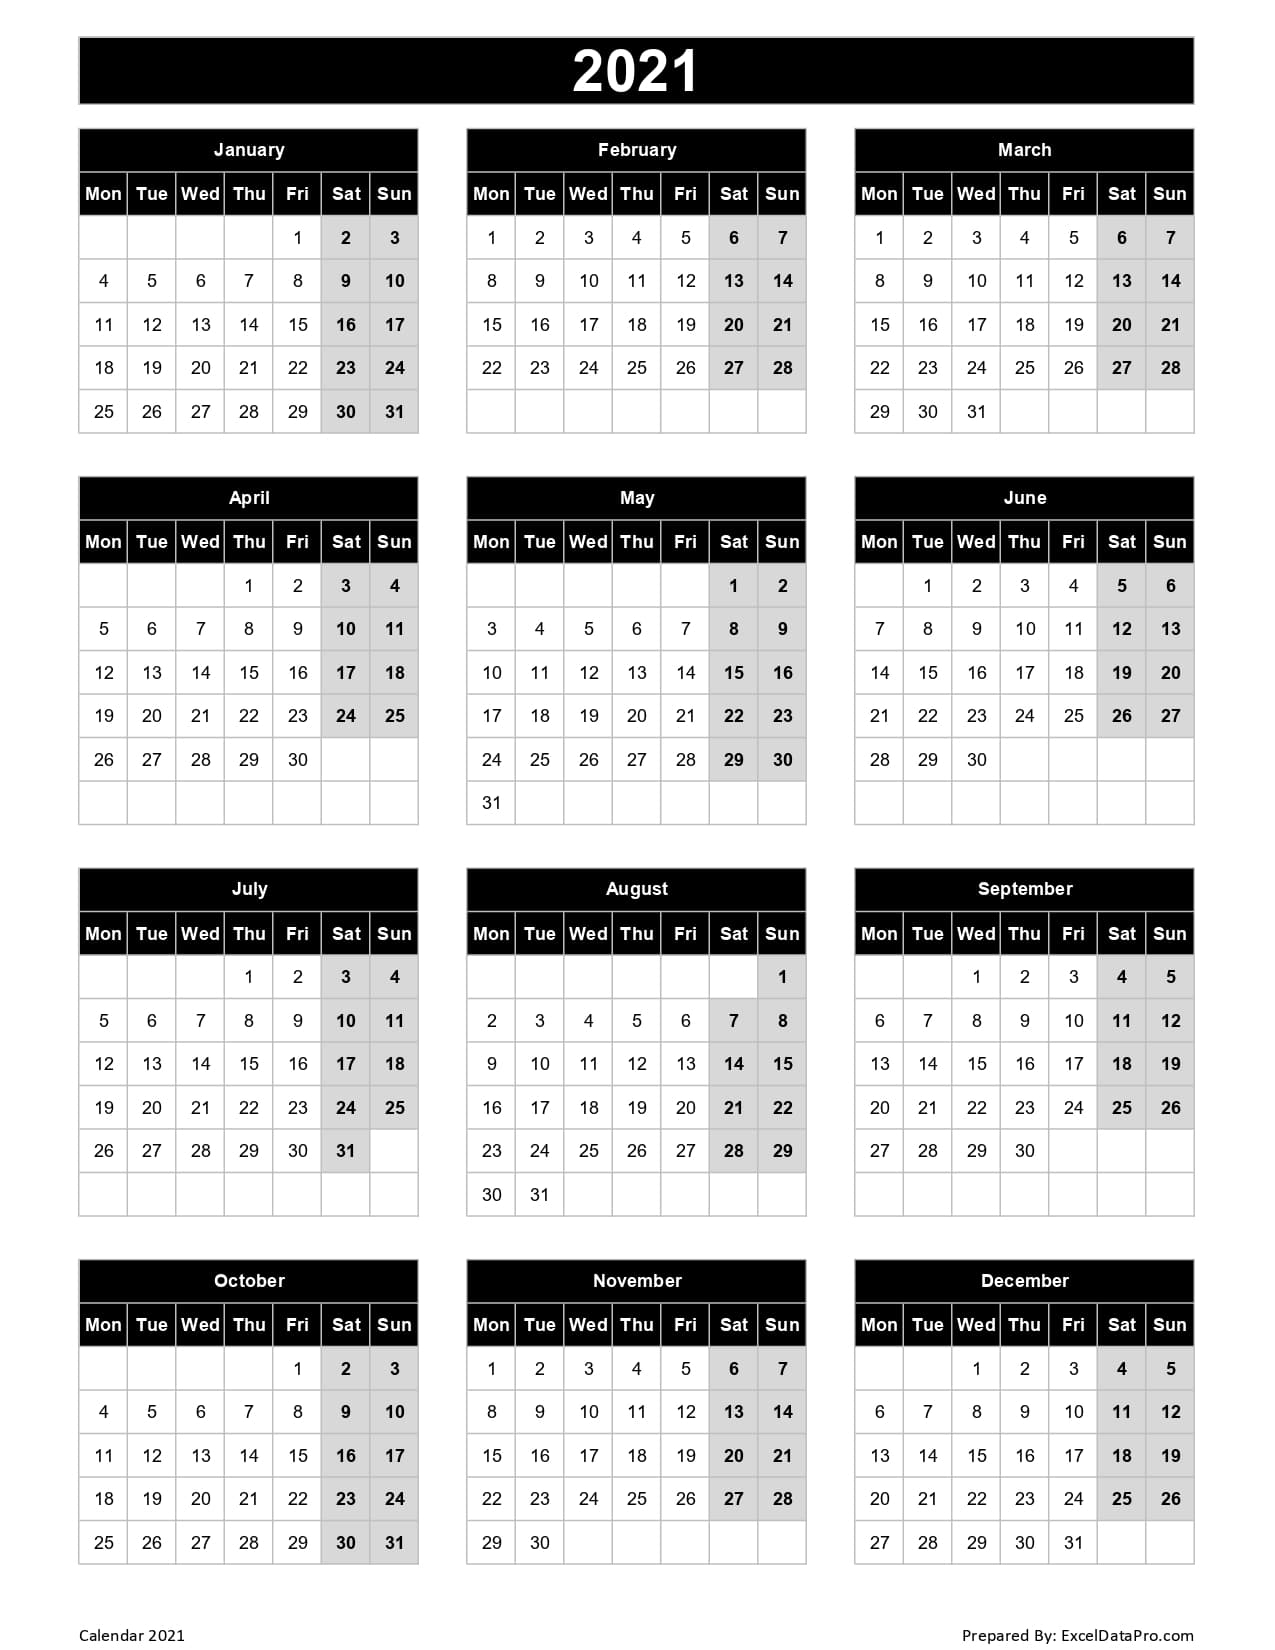 Download 2021 Yearly Calendar (Mon Start) Excel Template